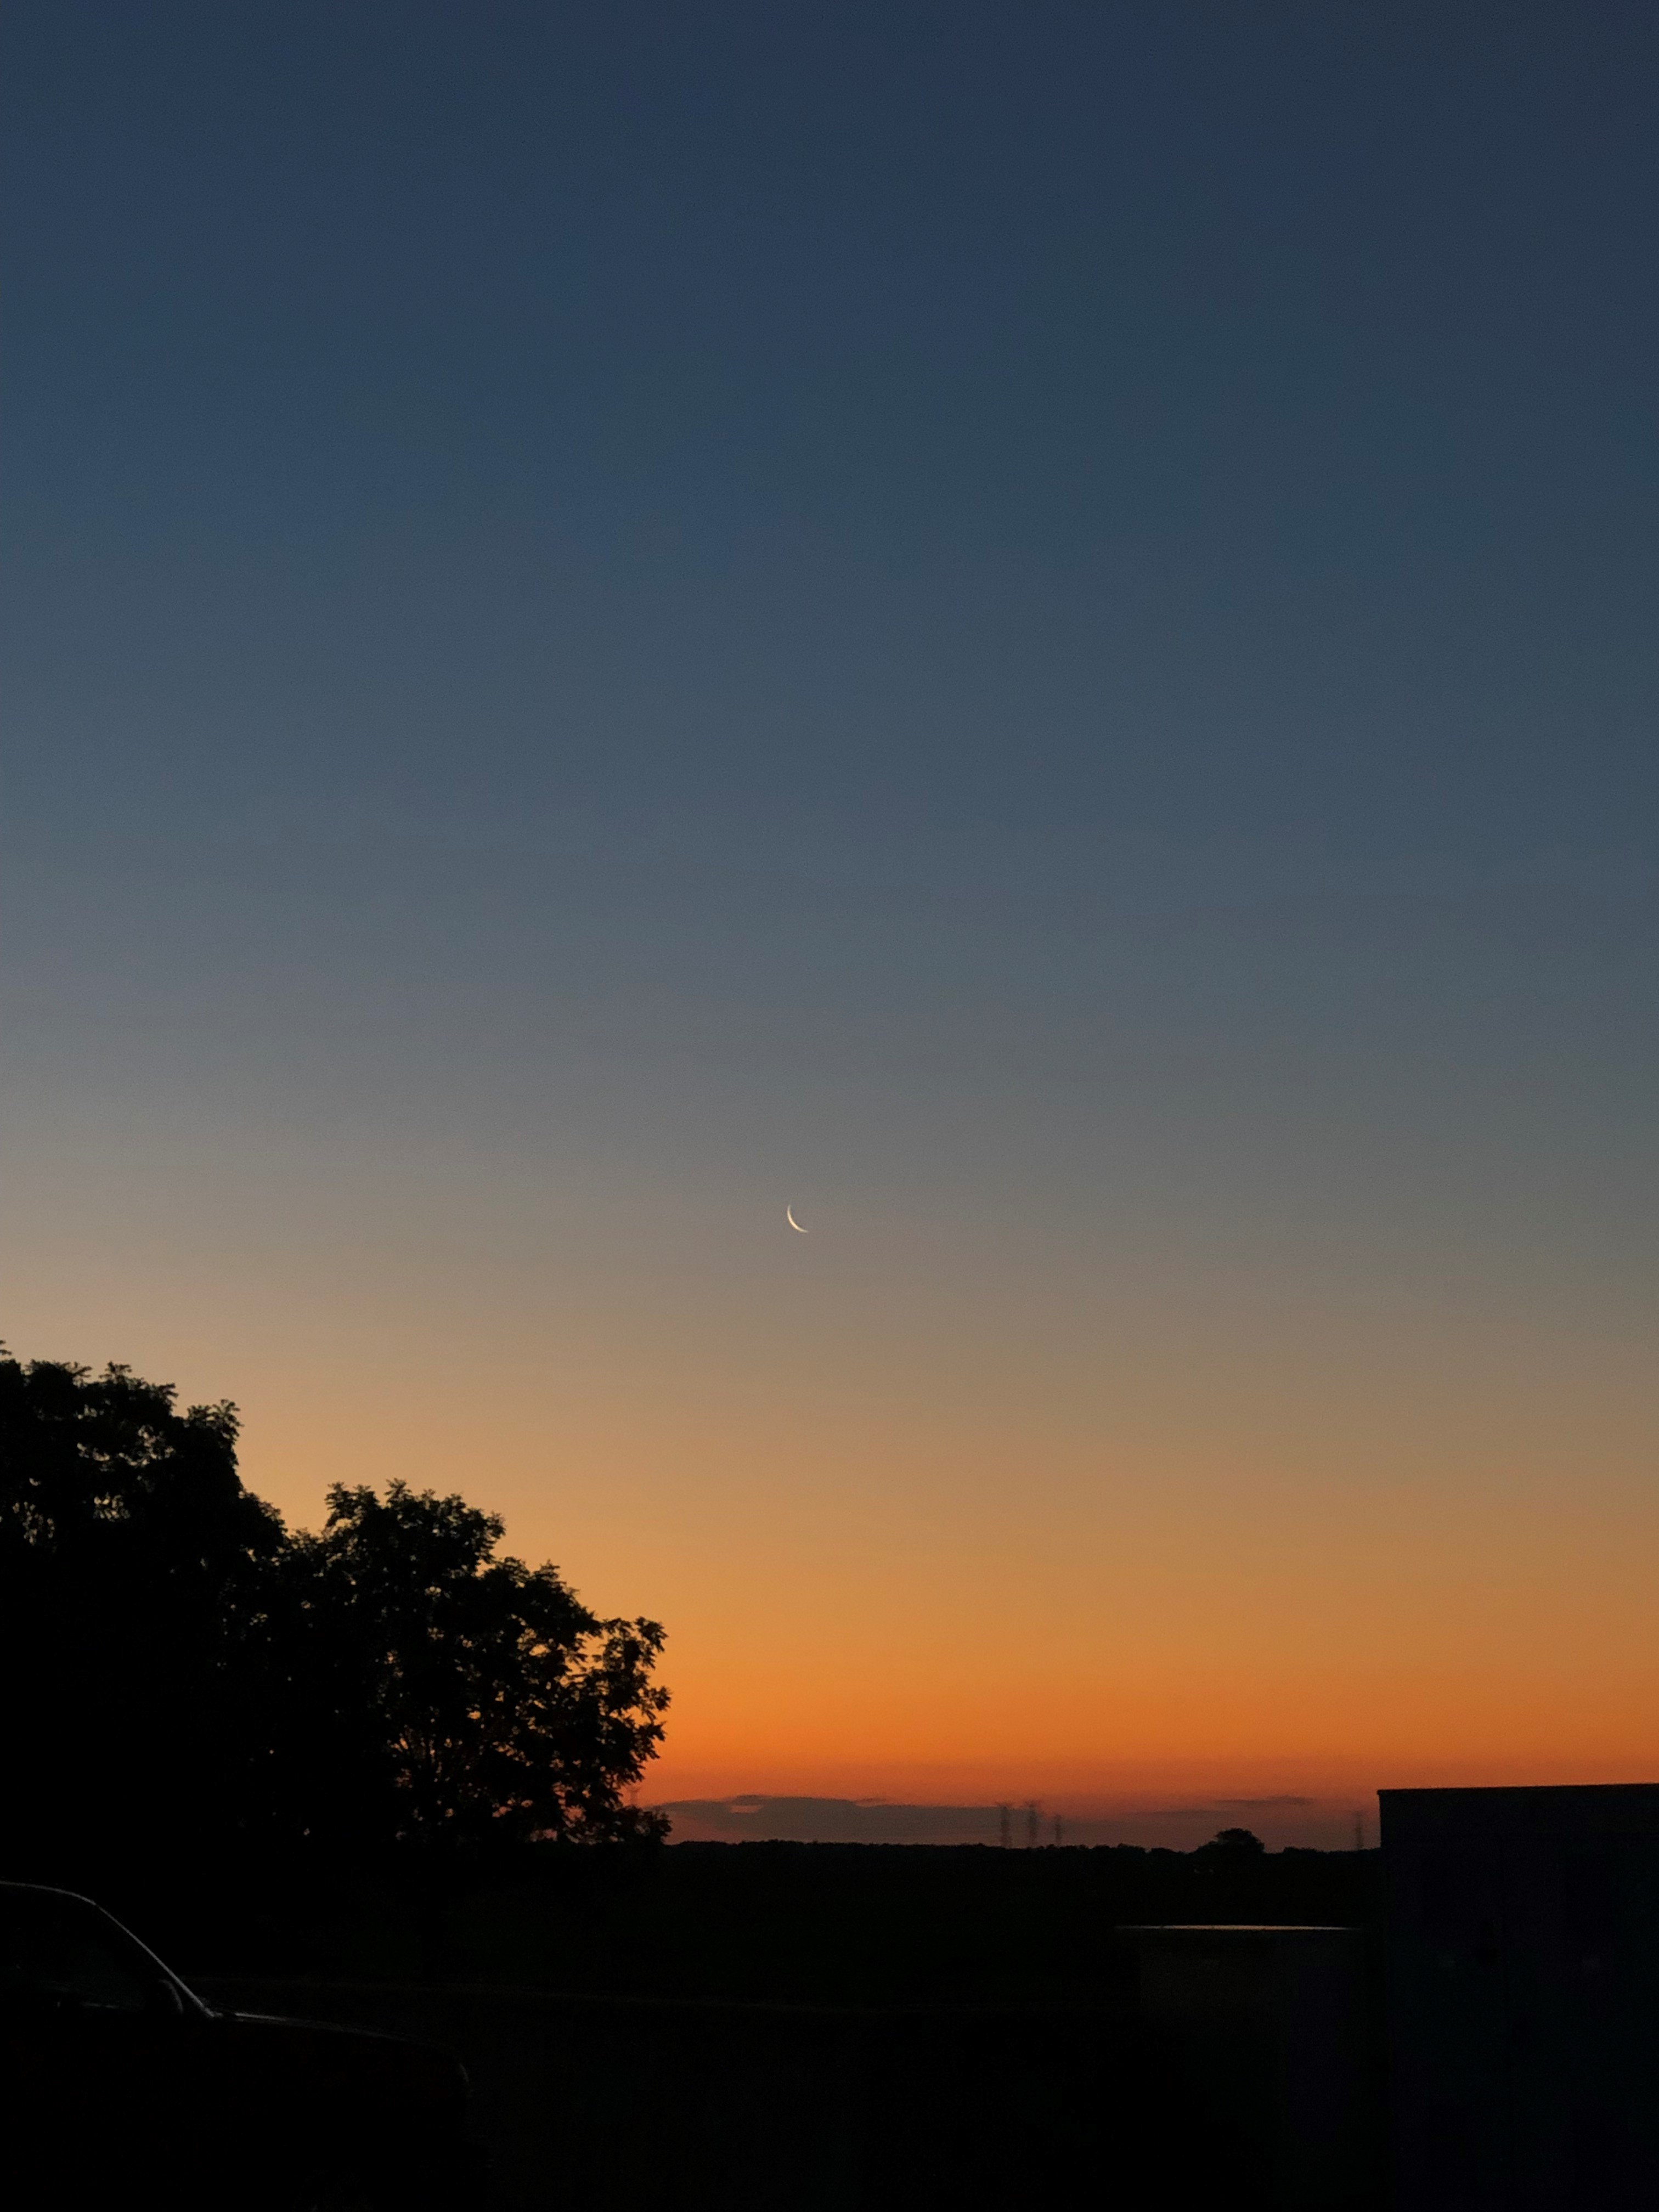 This photo was taken on the morning of July 11. Look closely for the moon. nature, landscape, sky Photo: Rick Espinoza